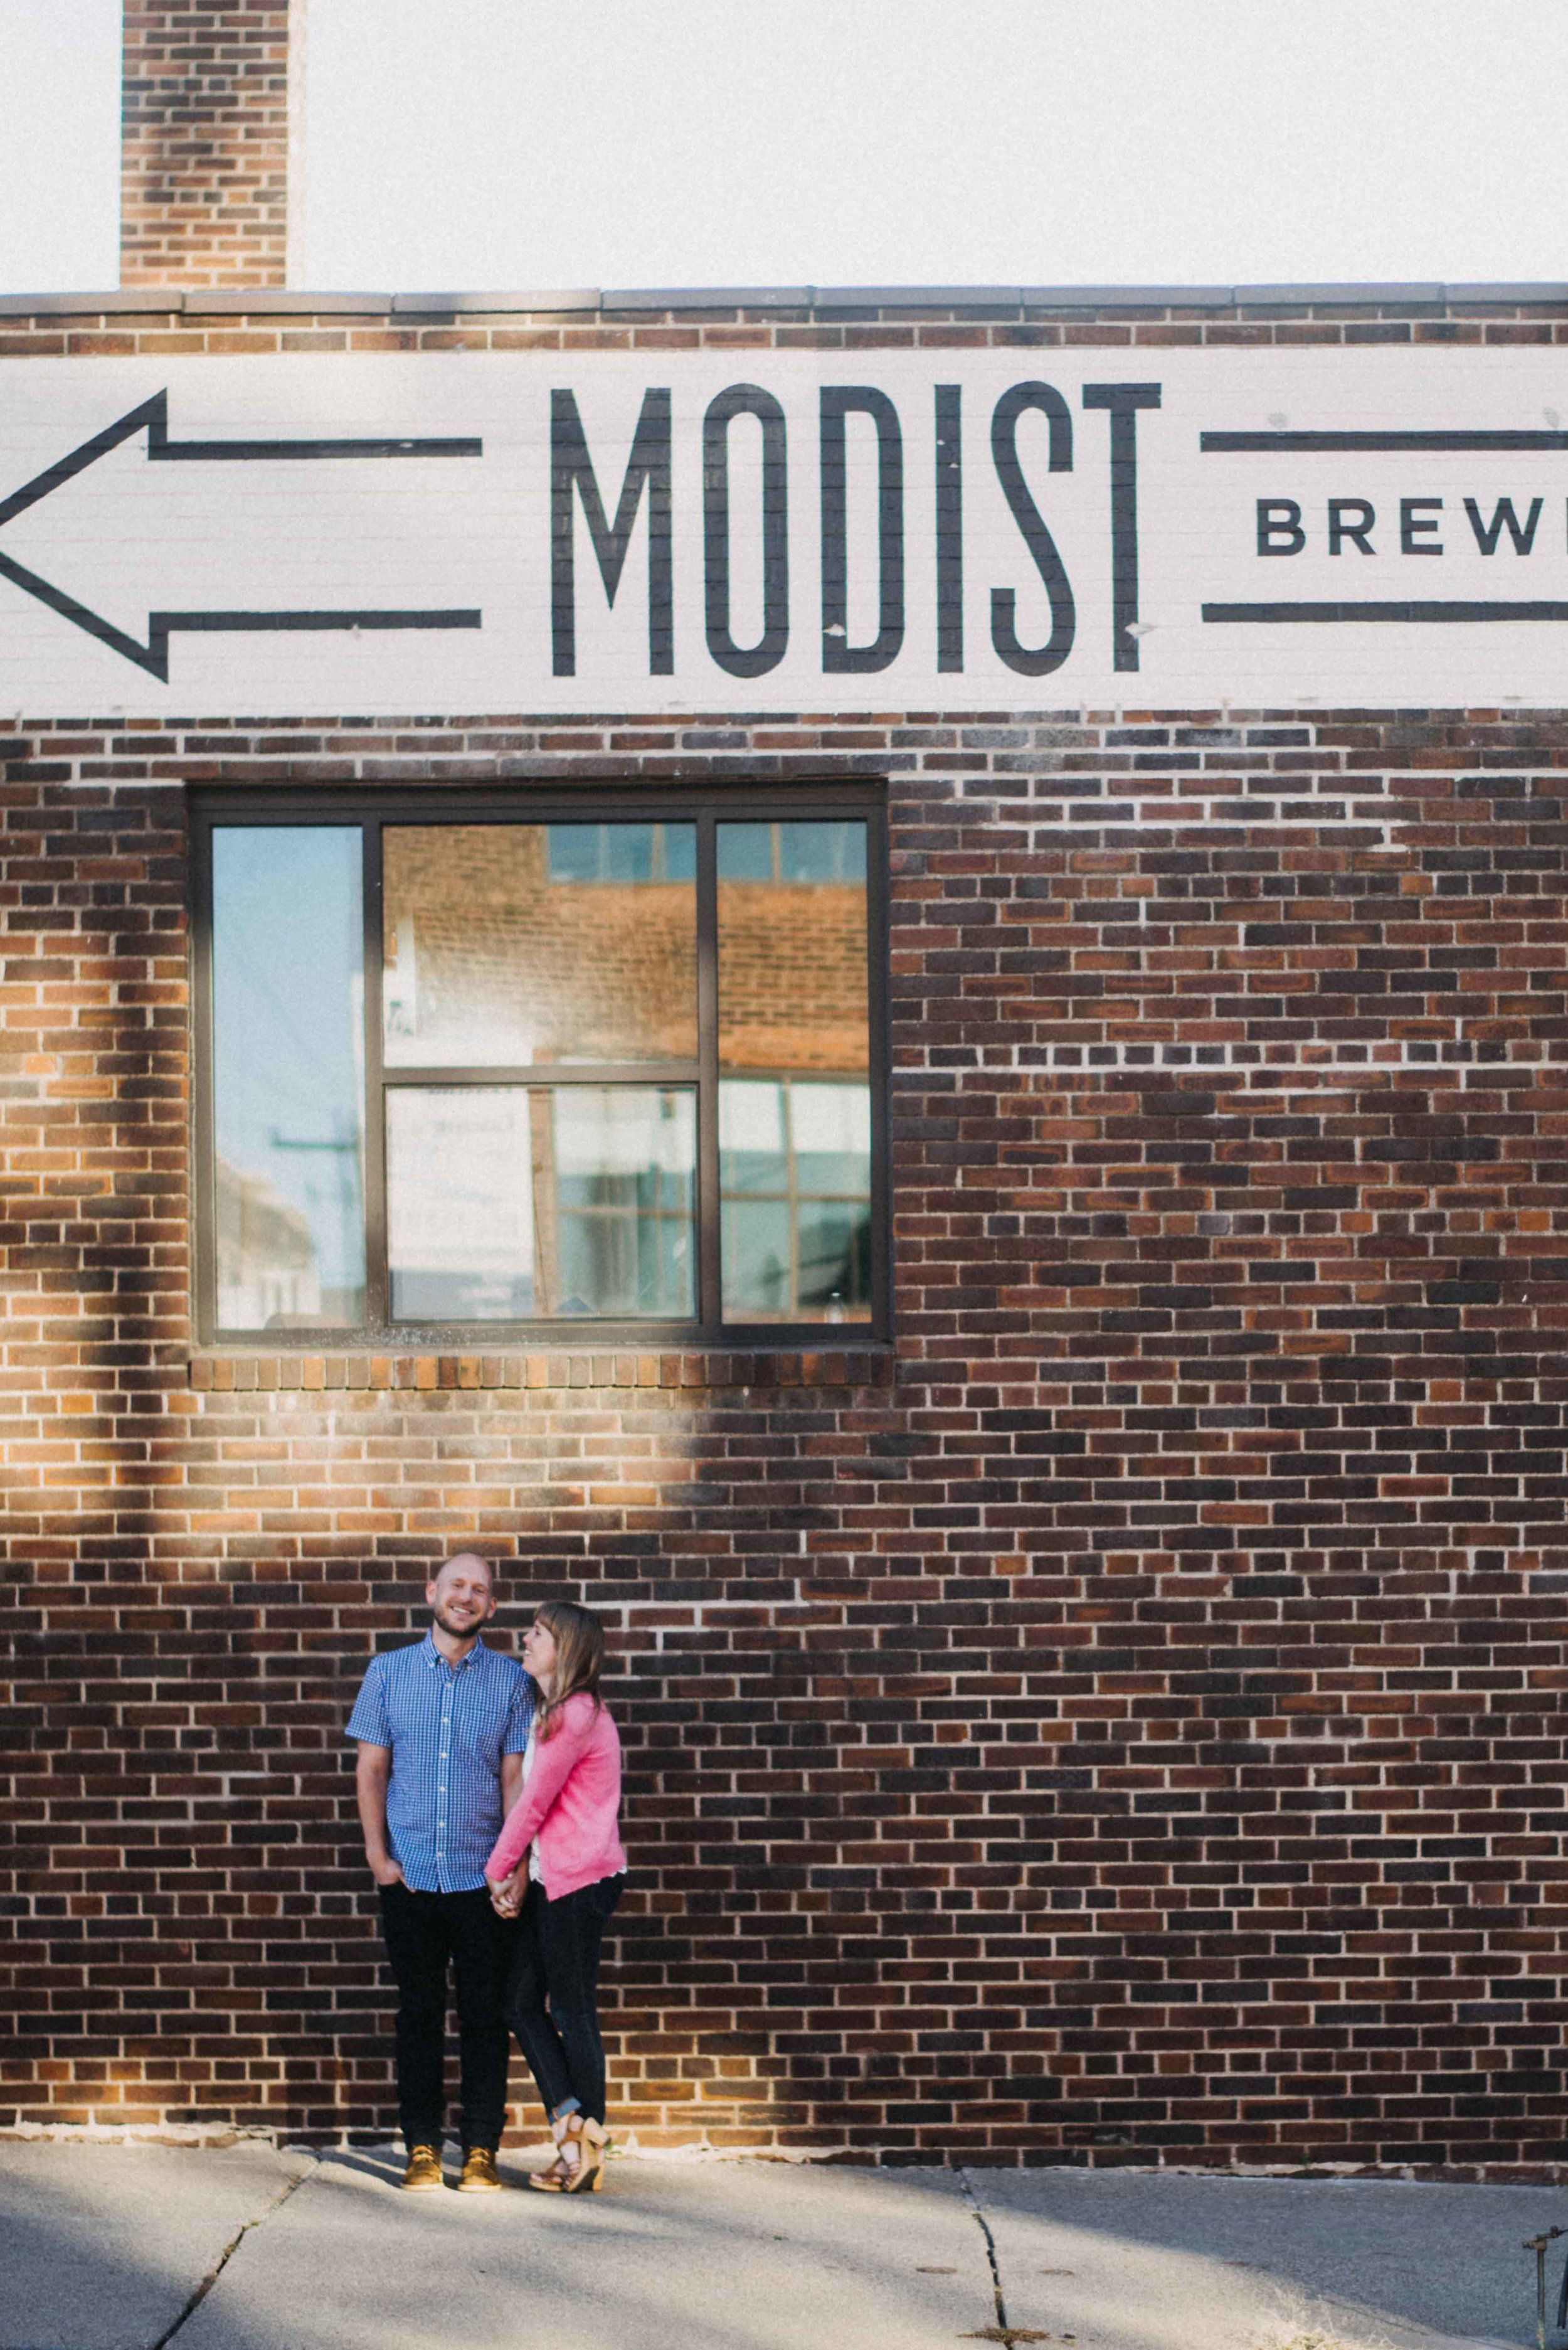 modist_brewing_minneapolis_minnesota_wedding_photography_engagement_session (4 of 32).JPG